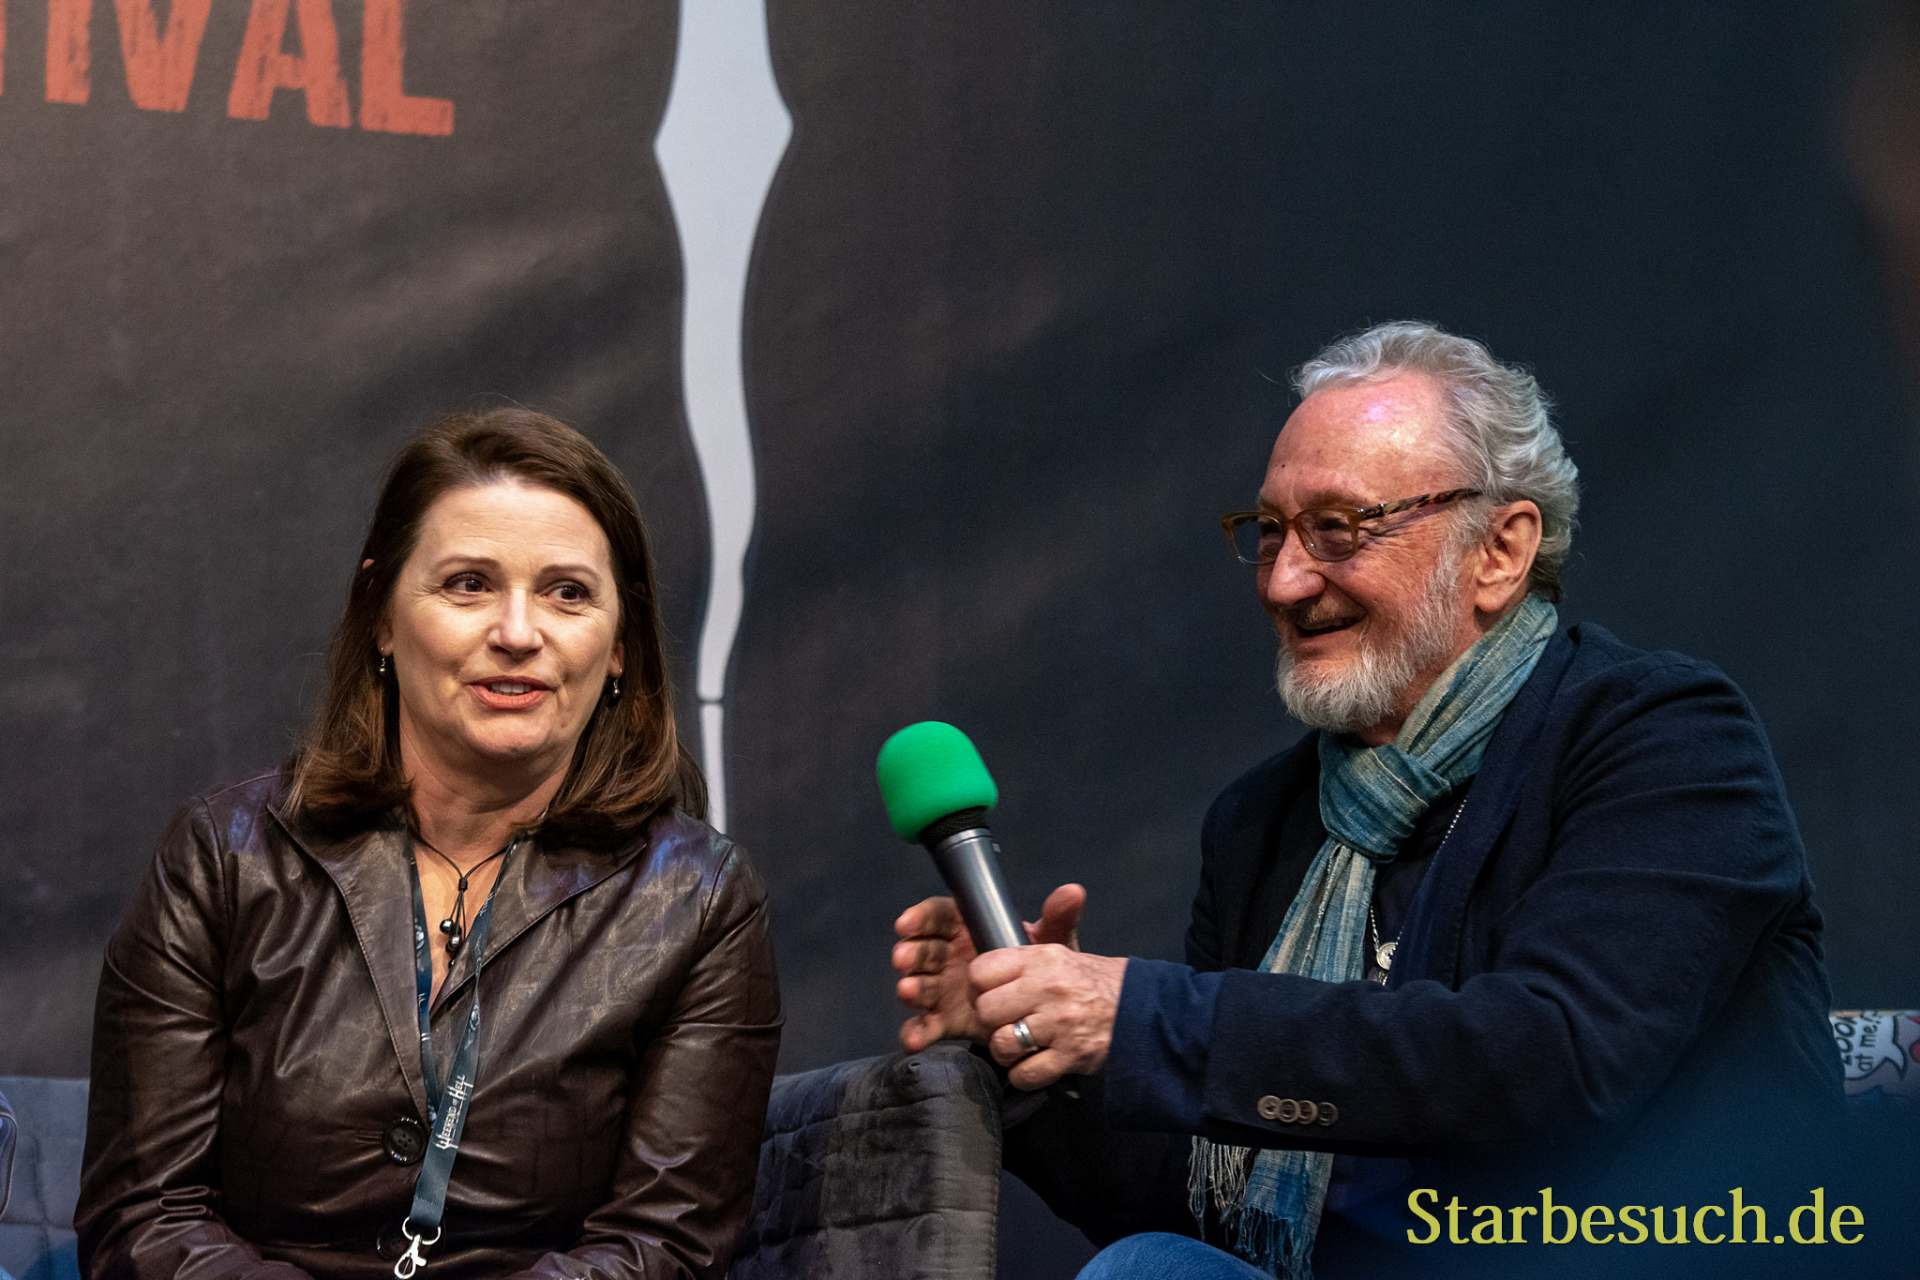 DORTMUND, GERMANY - November 3rd 2018: Joann Willette and Robert Englund at Weekend of Hell 2018